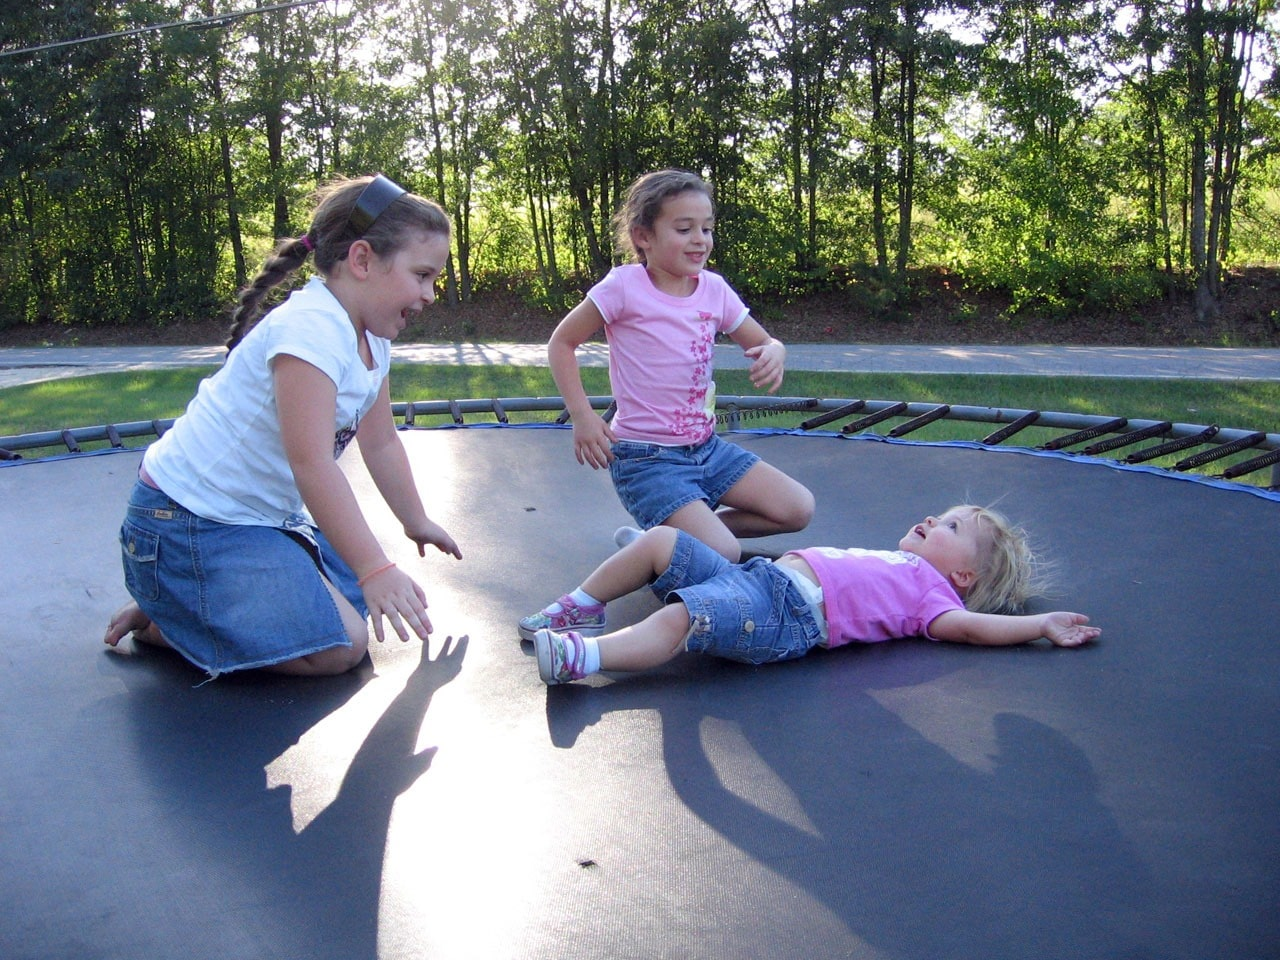 Girls playing on trampoline